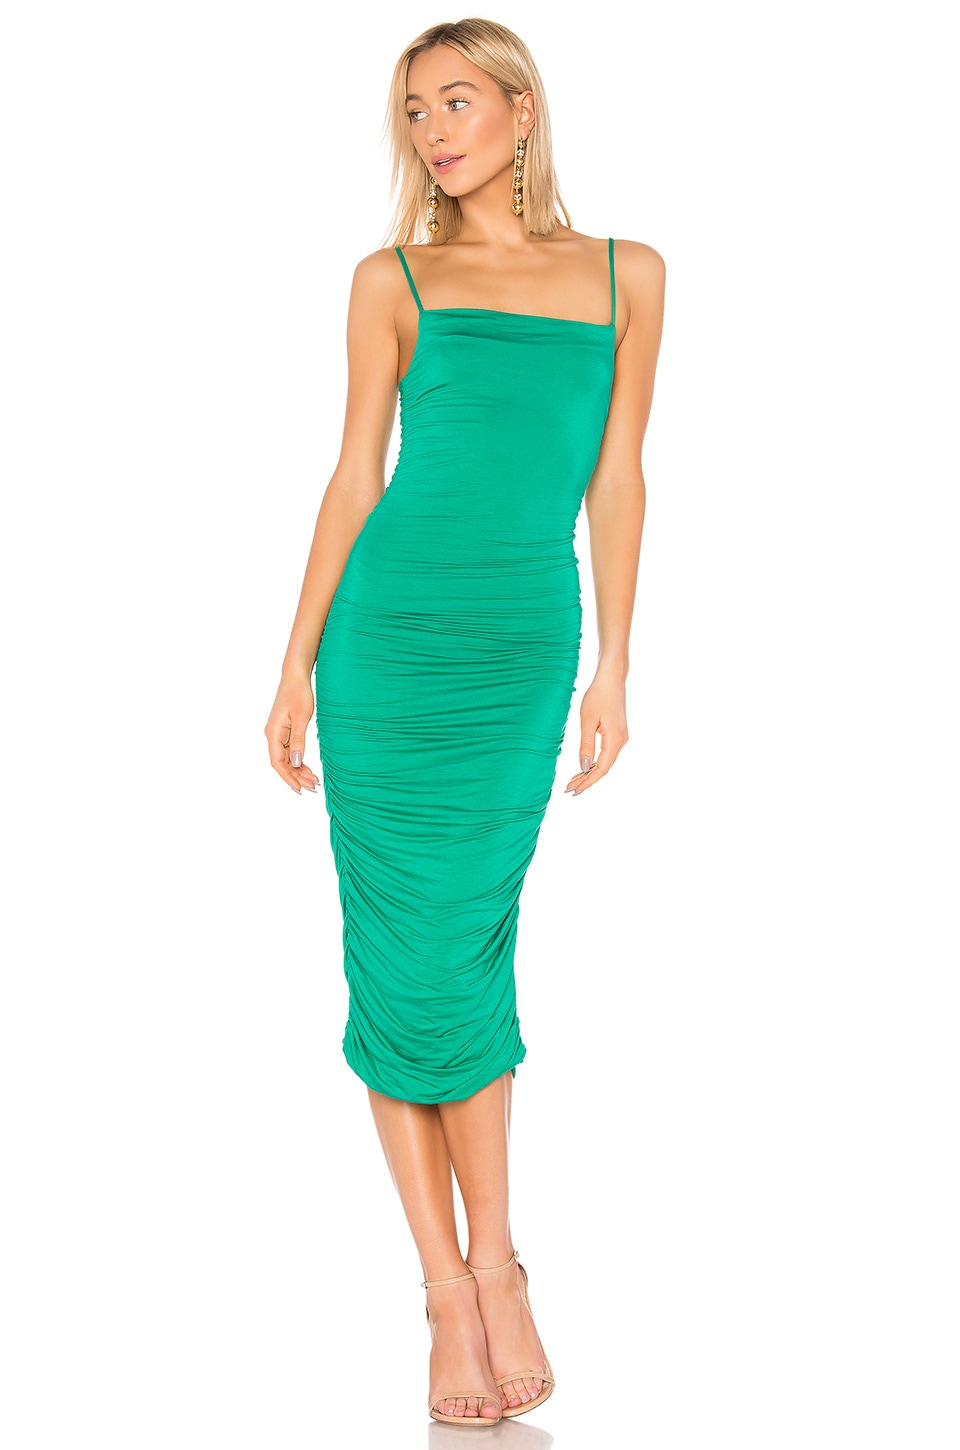 Privacy Please Camille Midi Dress in Kelly Green